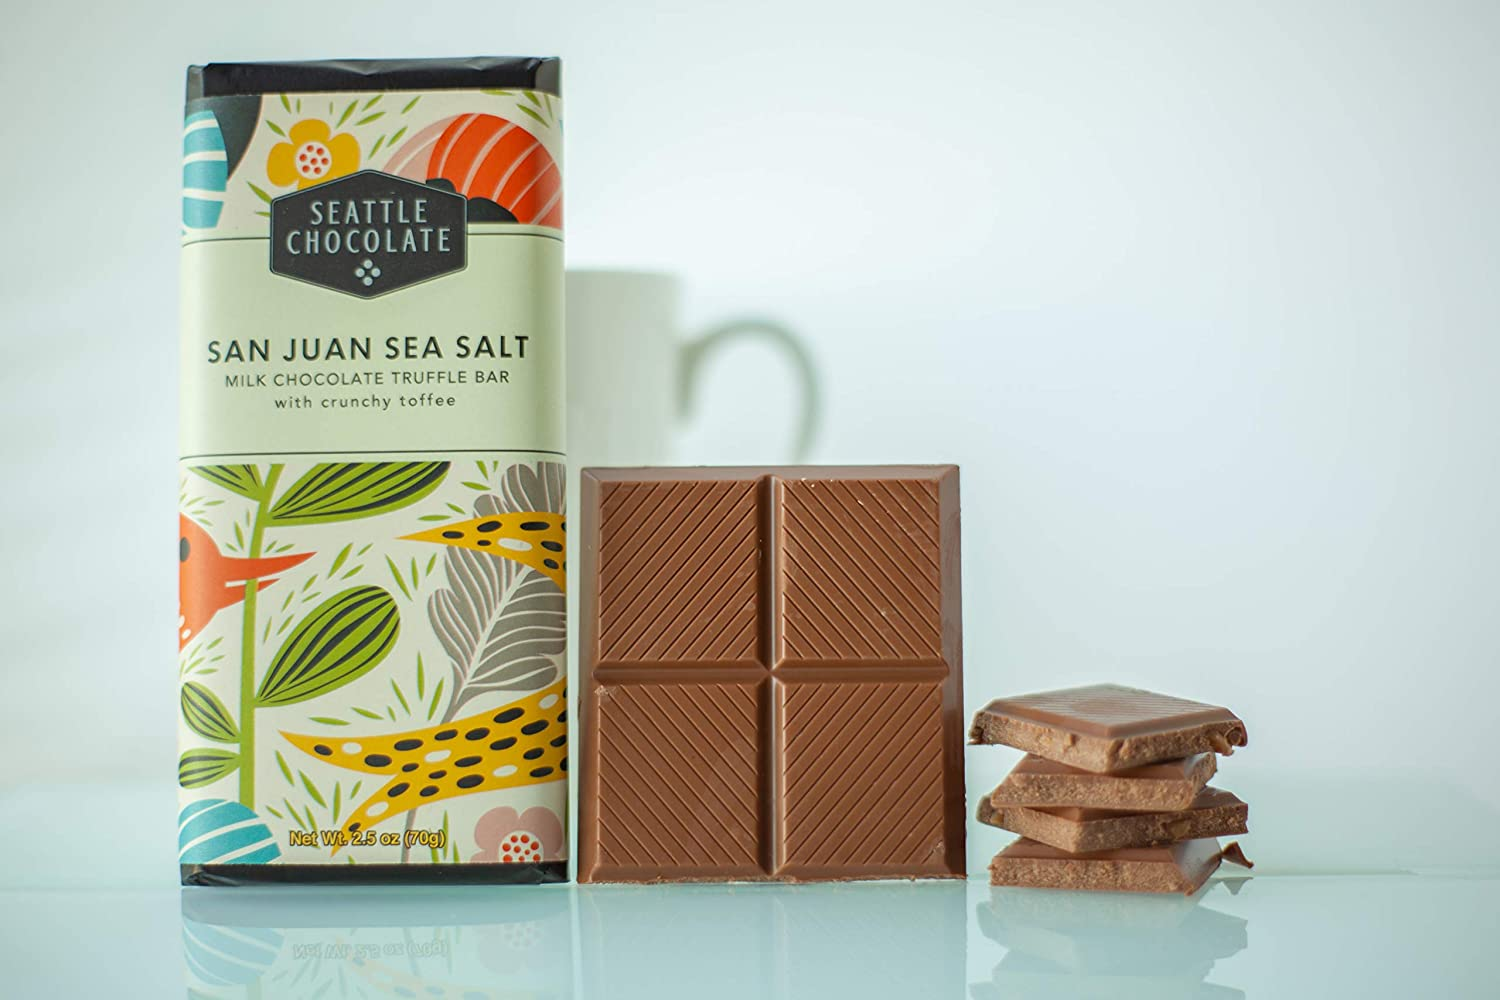 San Juan Sea Salt Chocolate product sample with packaging and without.